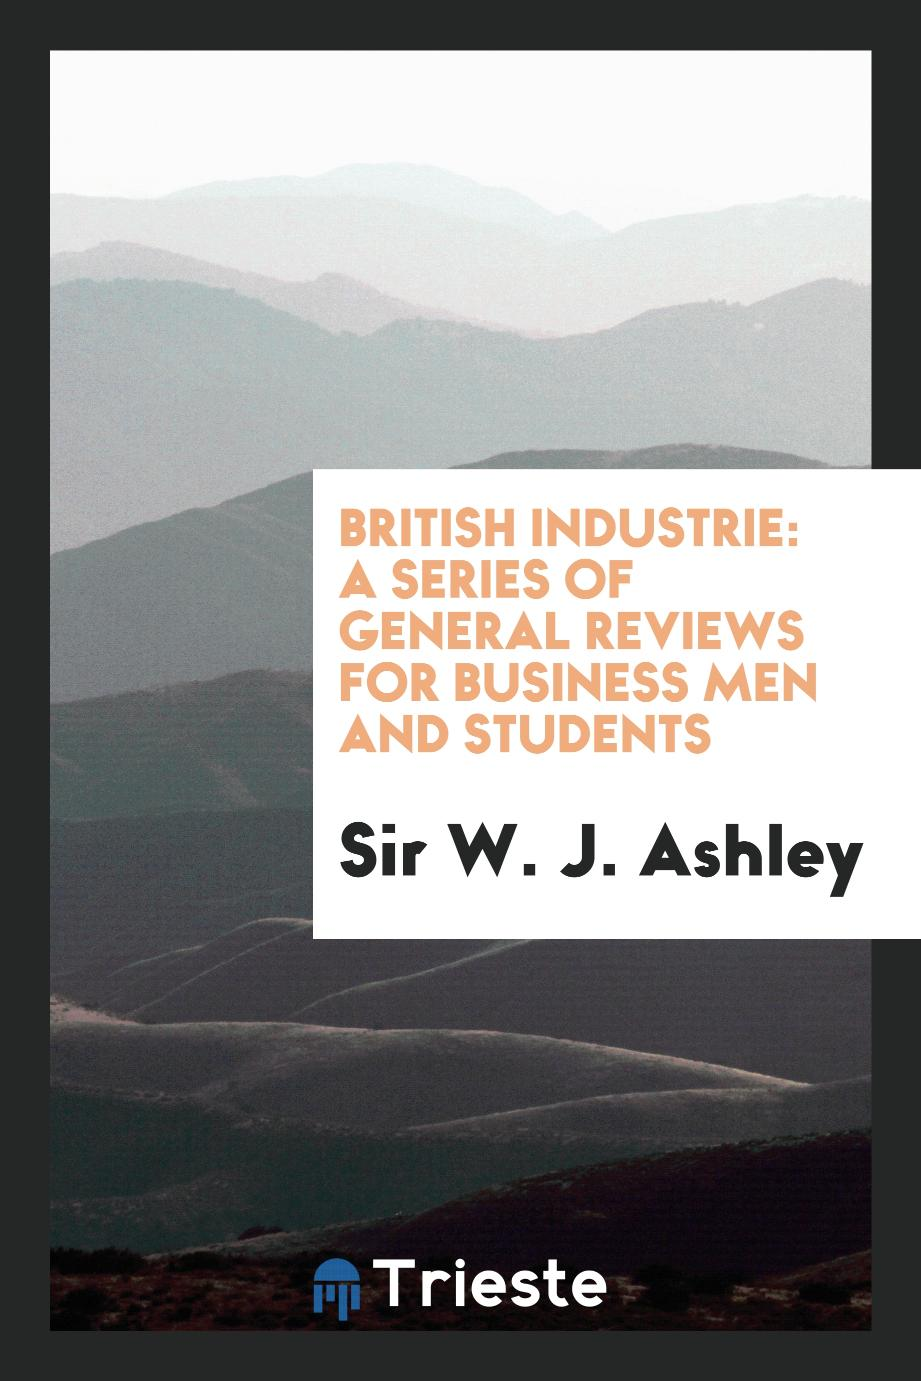 British industrie: a series of general reviews for business men and students